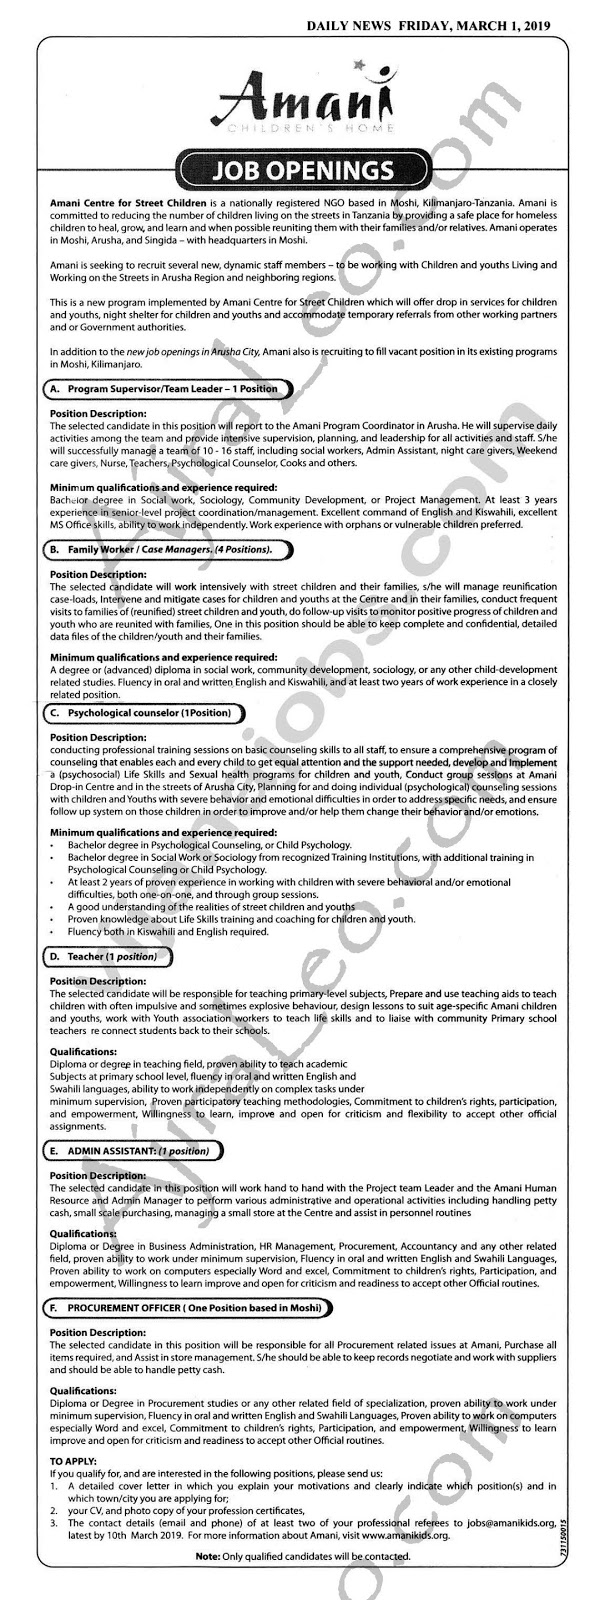 9 New Job Opportunities Moshi and Arusha at AMANI Centre